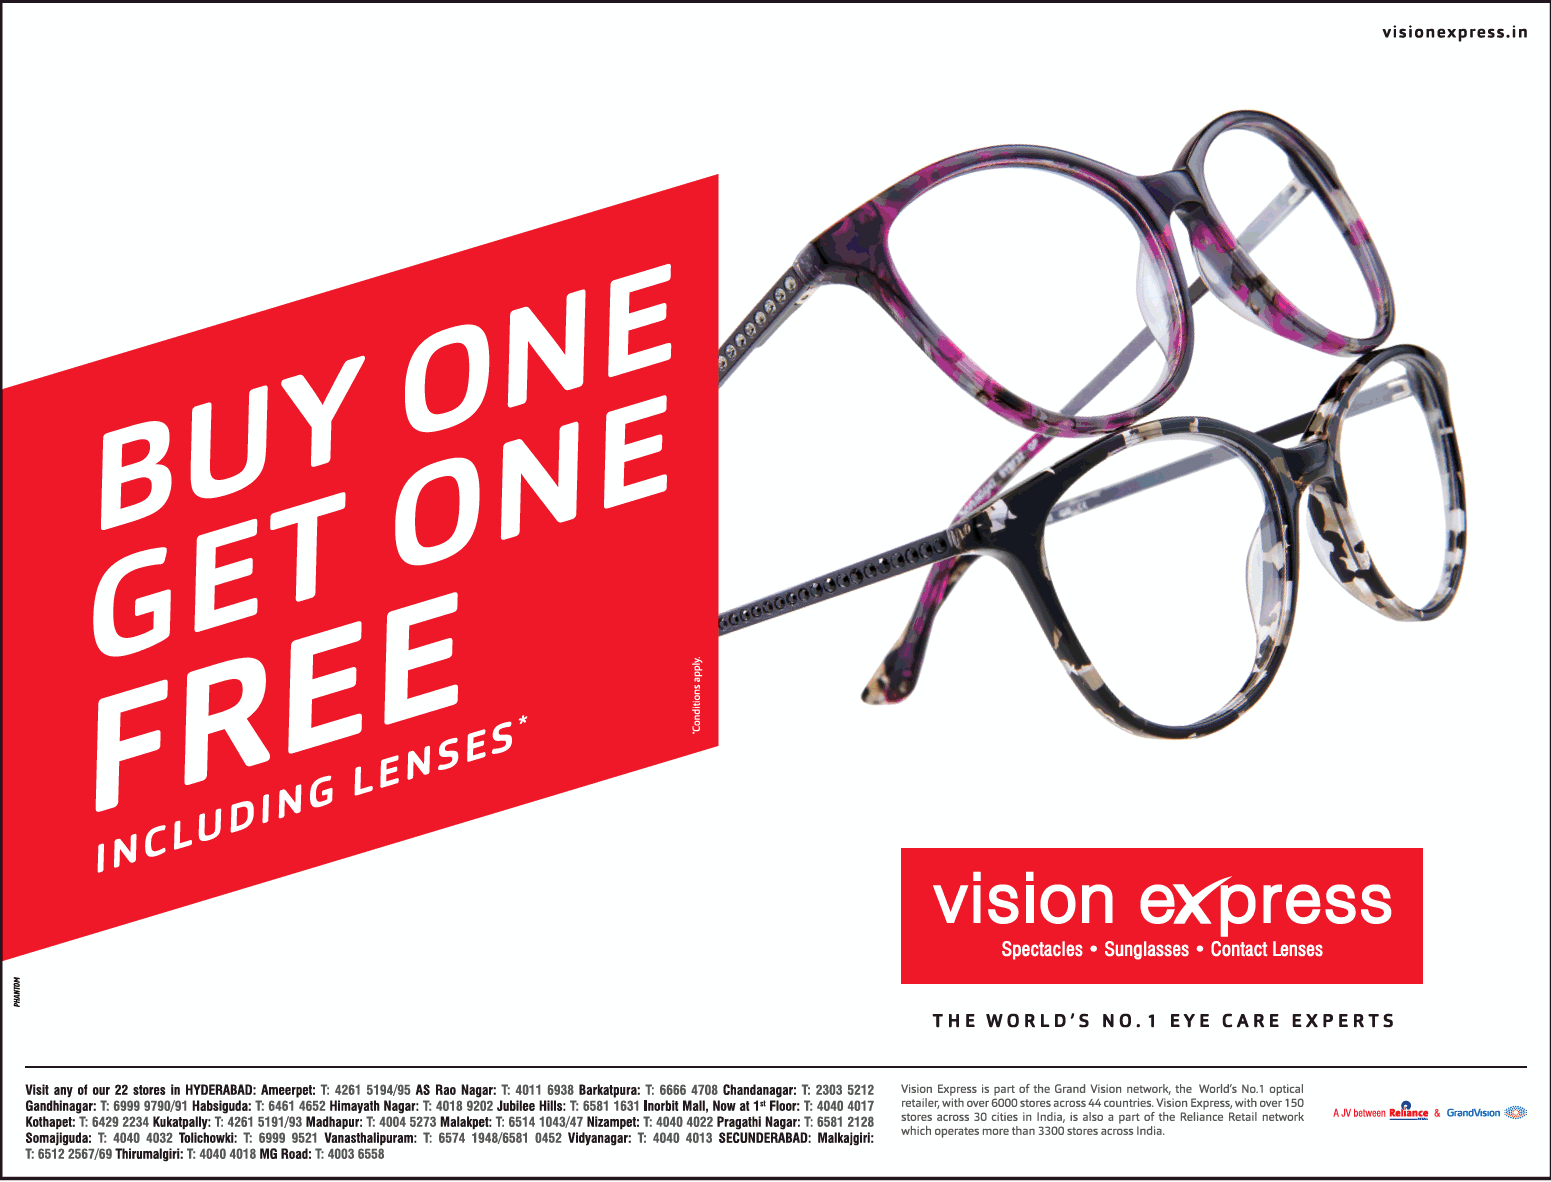 21a935f883 Vision Express The Worlds No 1 Eye Care Experts Buy One Get One Free ...